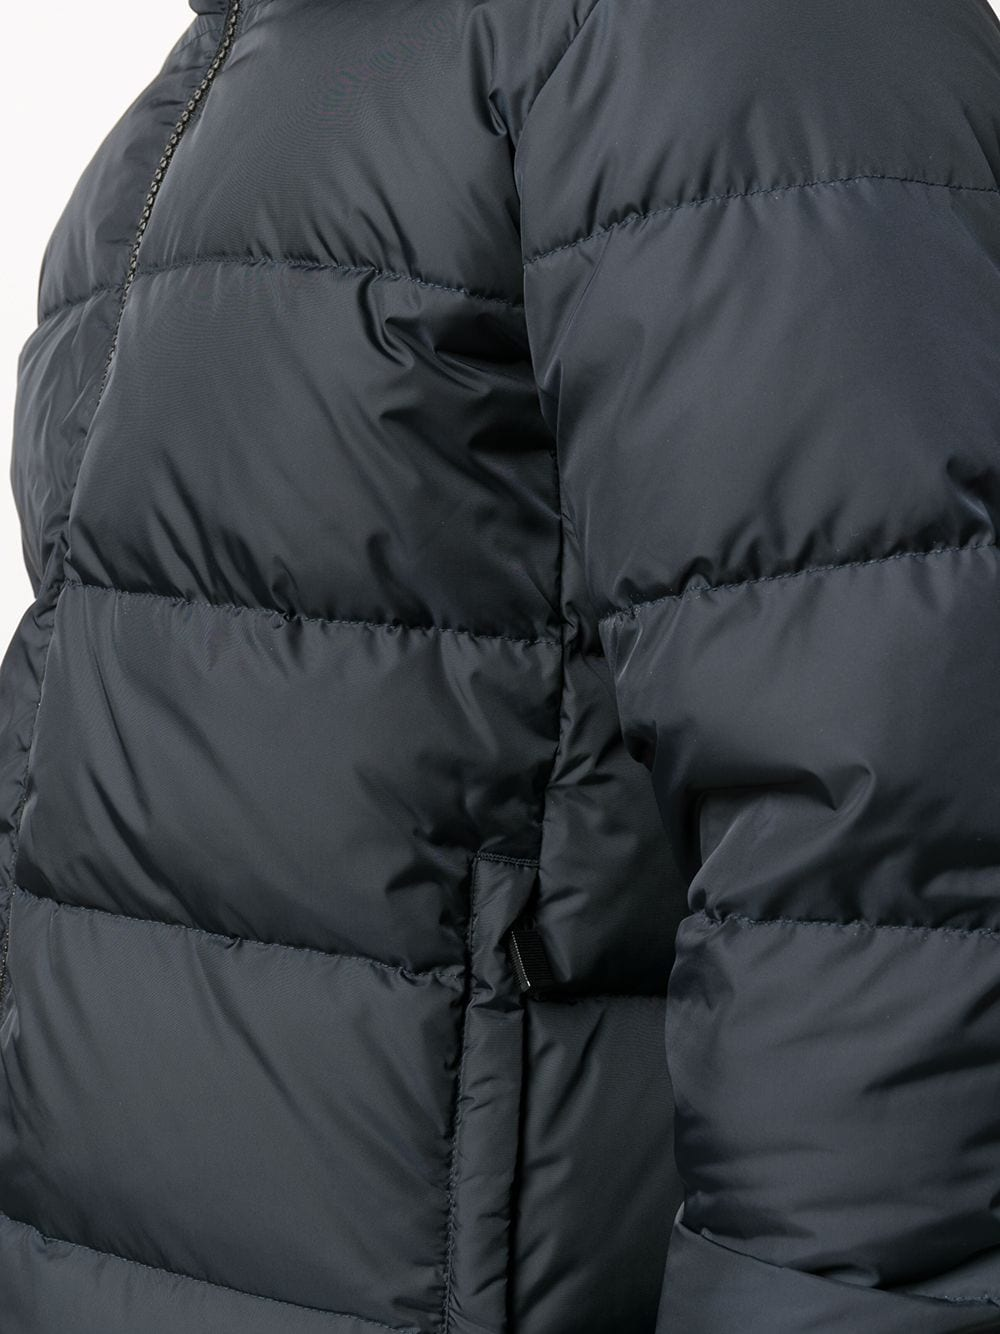 Midnight blue shell short puffer jacket  ALBERTO ASPESI |  | I018-795485101